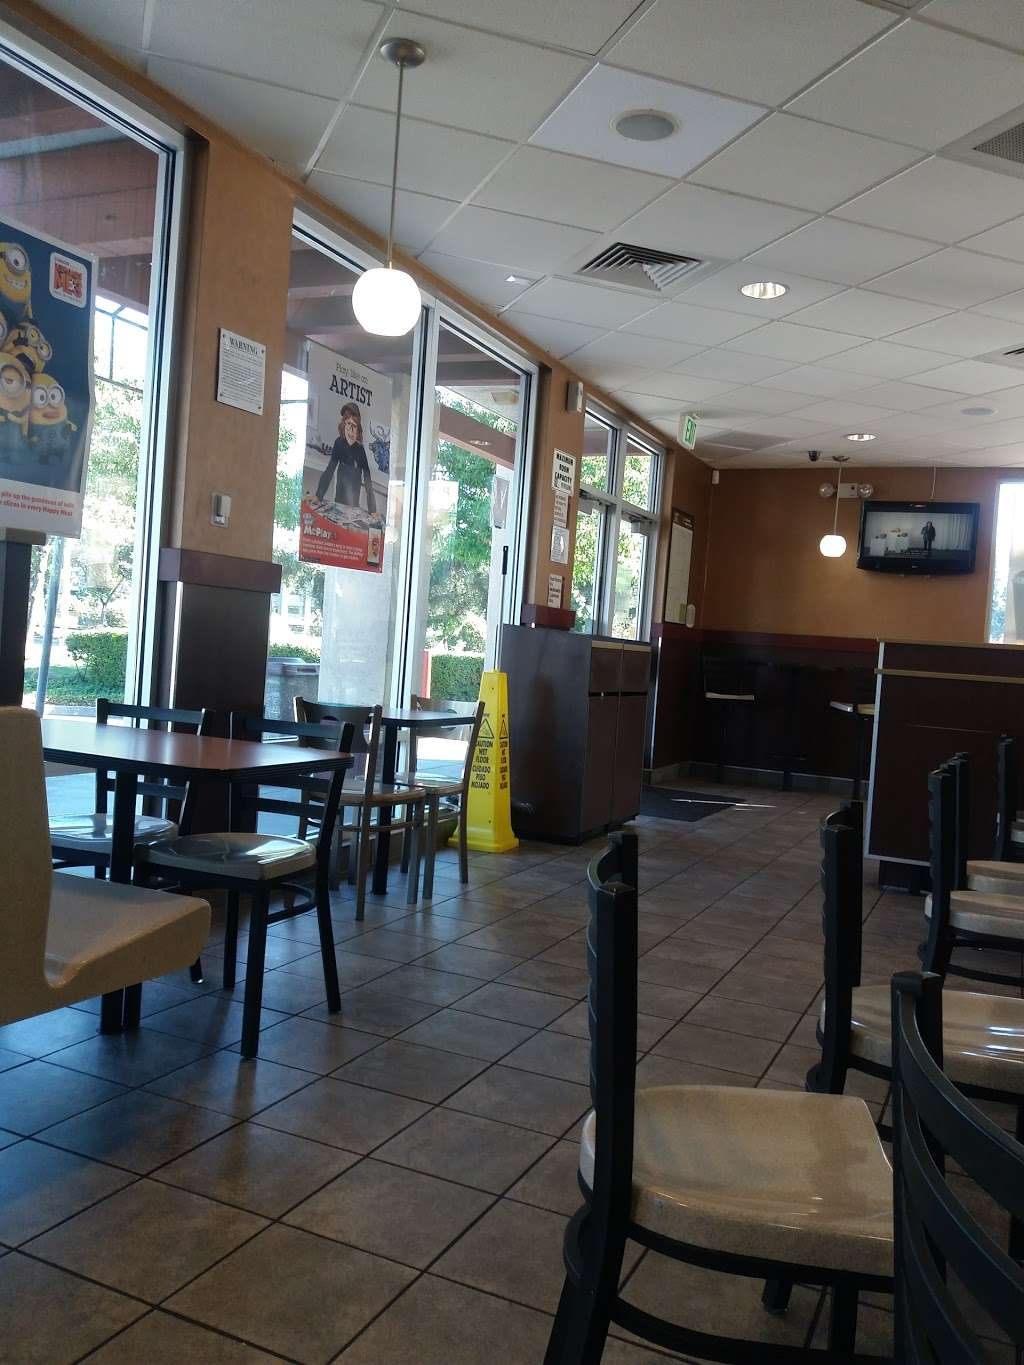 McDonalds - cafe  | Photo 10 of 10 | Address: 5508 Monterey Rd, San Jose, CA 95138, USA | Phone: (408) 363-0759